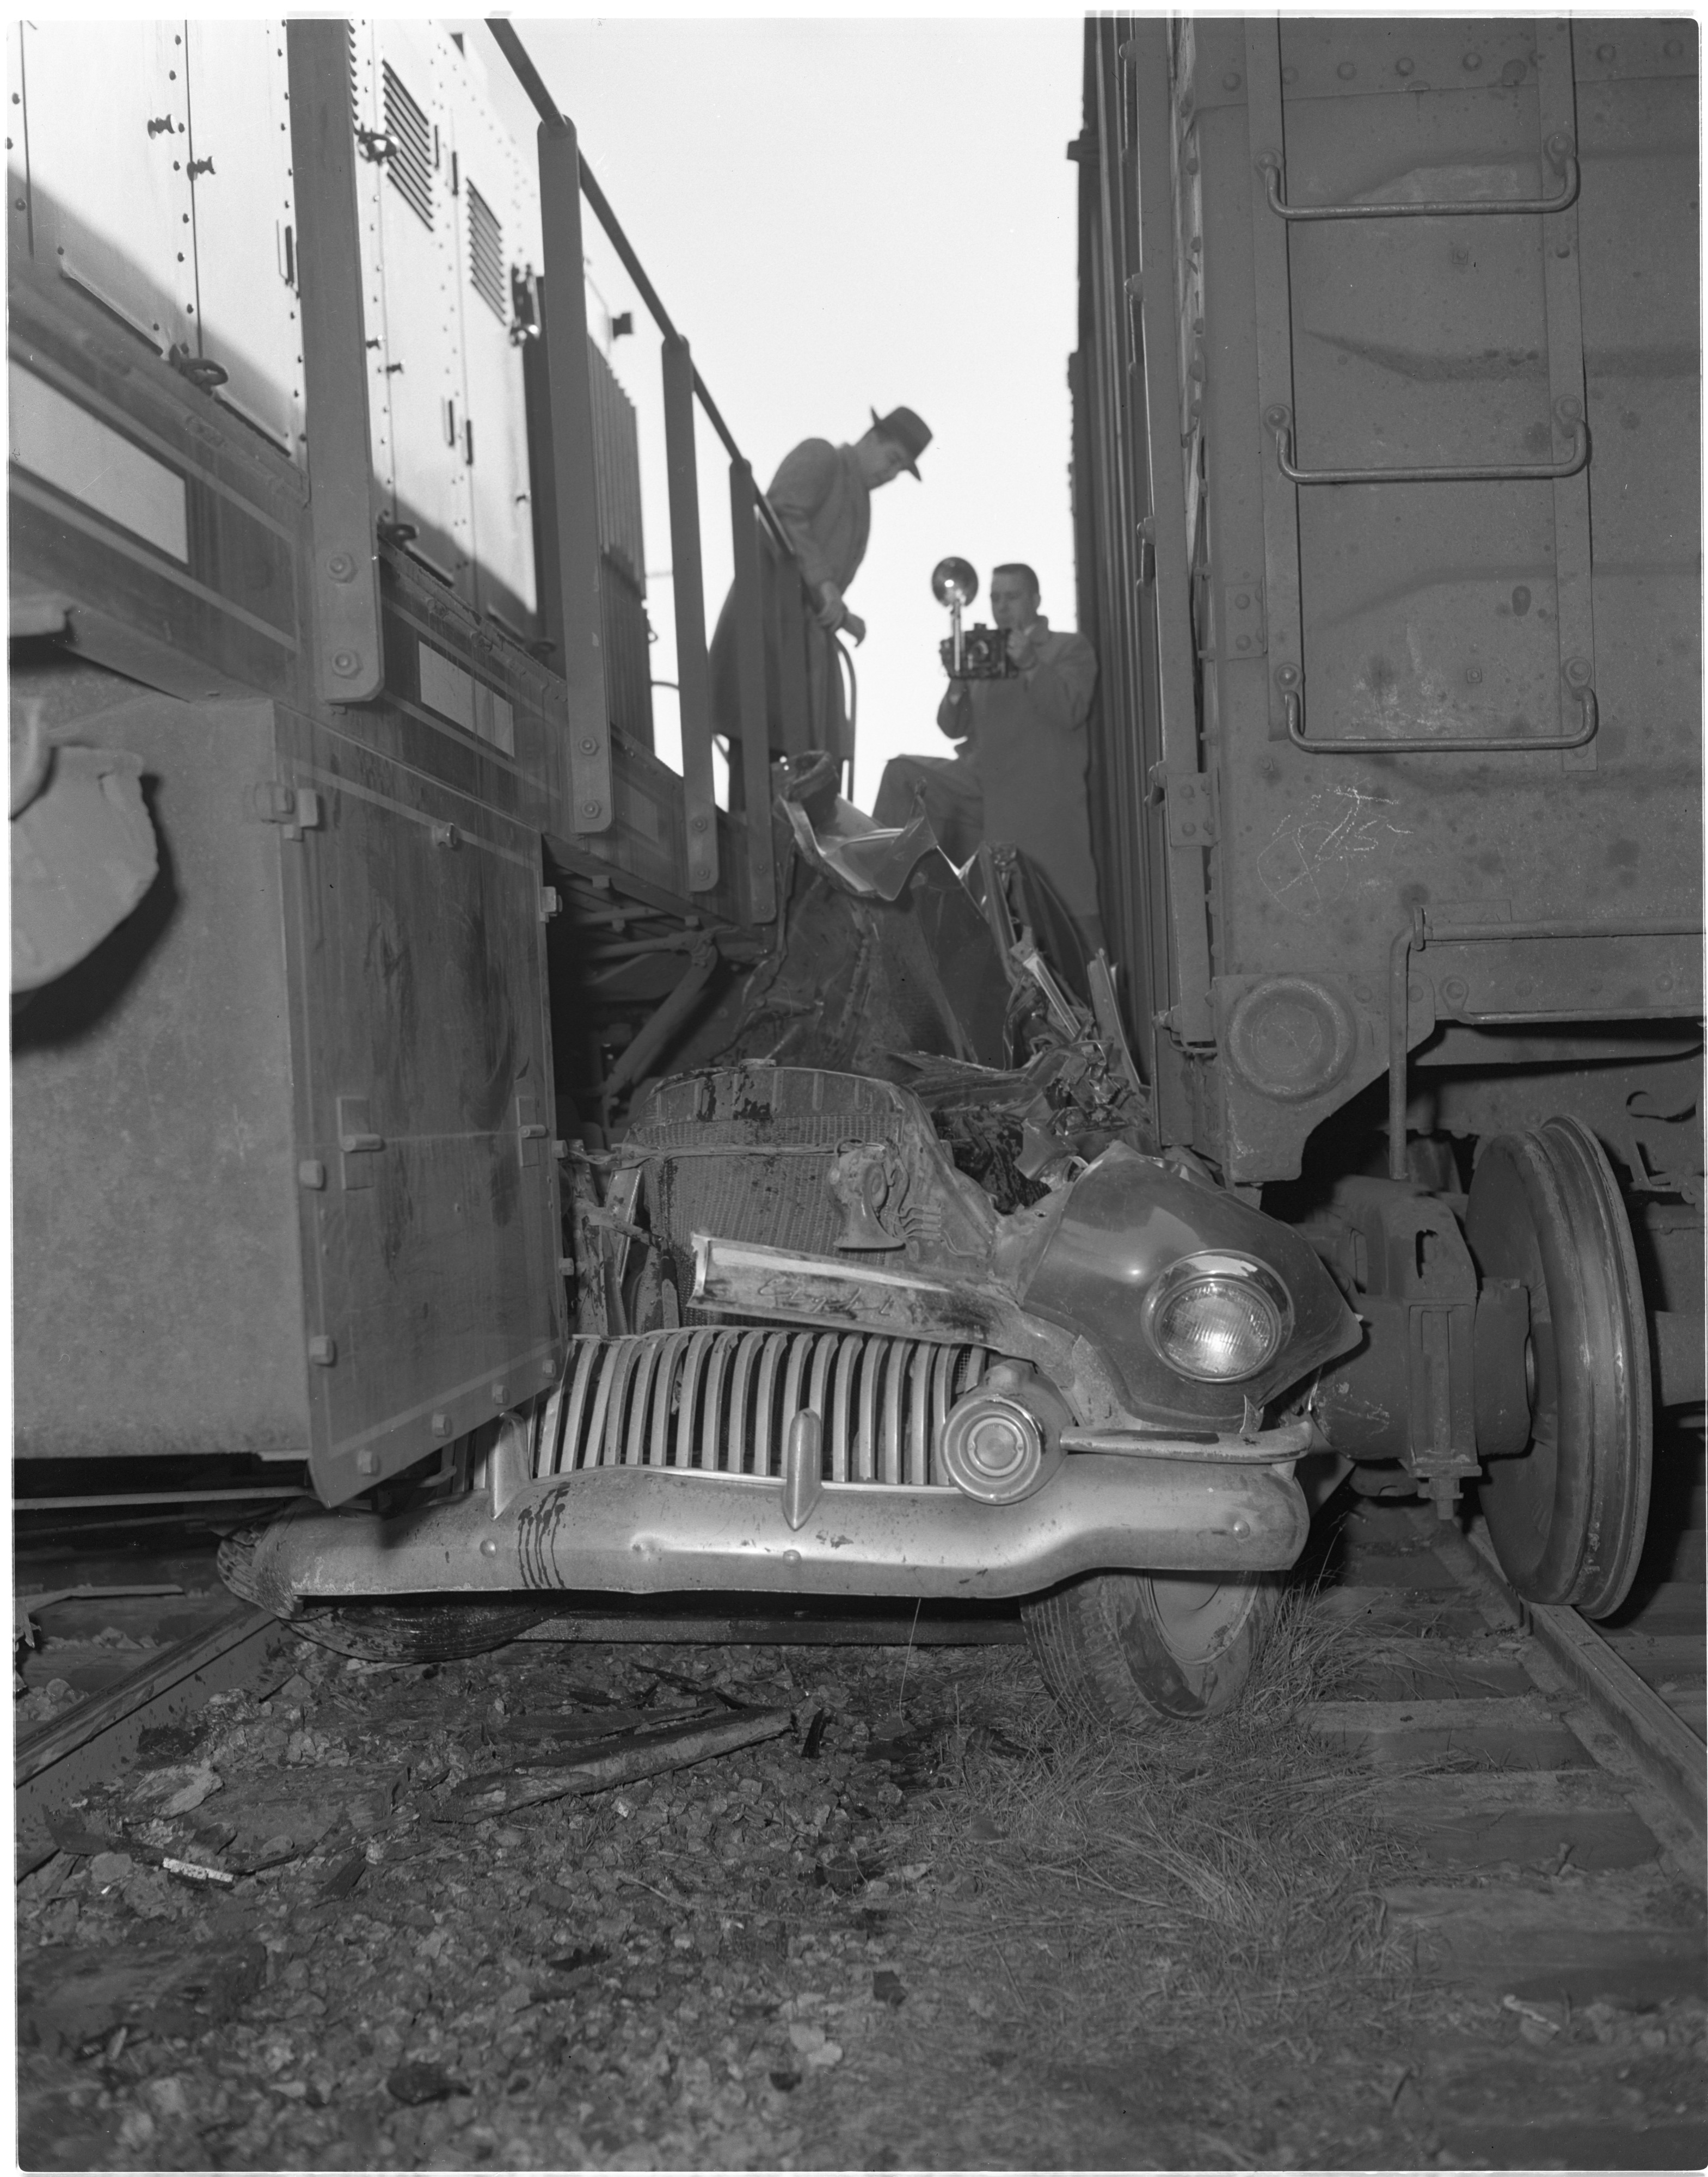 Investigators Examine Accident Scene of Albert Trinkle's Car Smashed Between Two Trains, January 1954 image